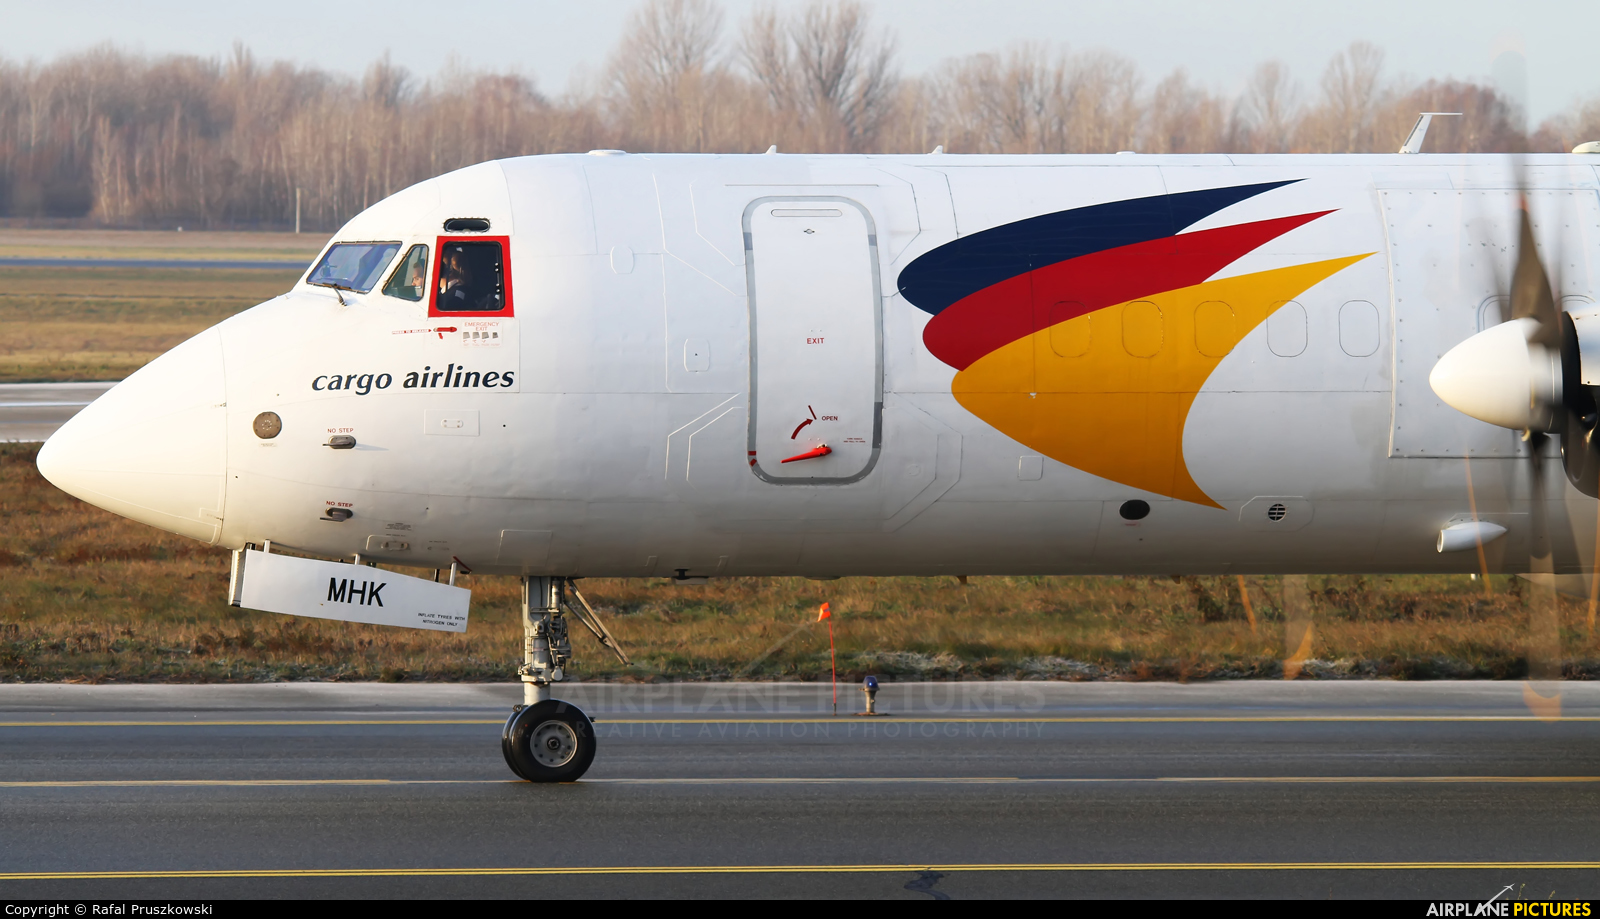 West Air Sweden SE-MHK aircraft at Warsaw - Frederic Chopin